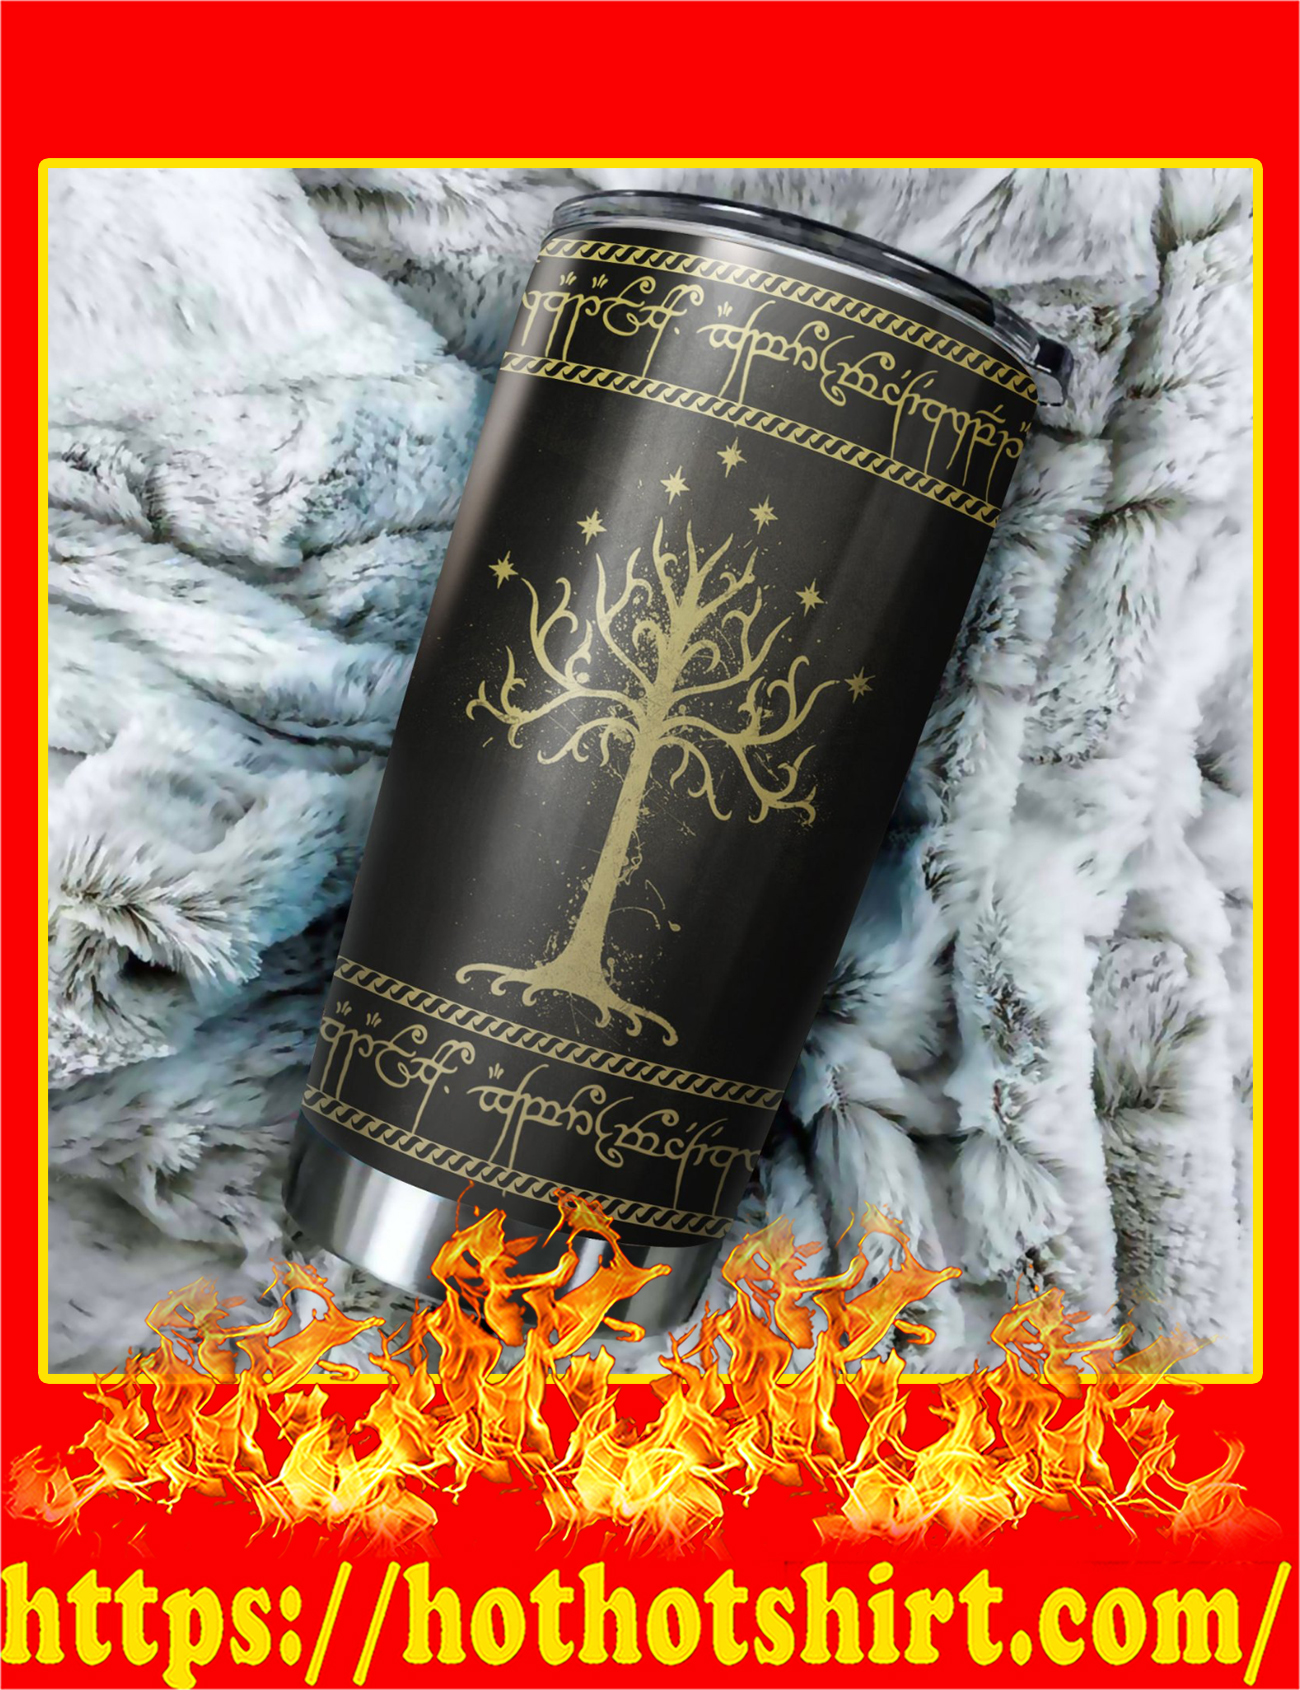 White Tree Of Gondor Art Stainless Steel Tumbler - Pic 2